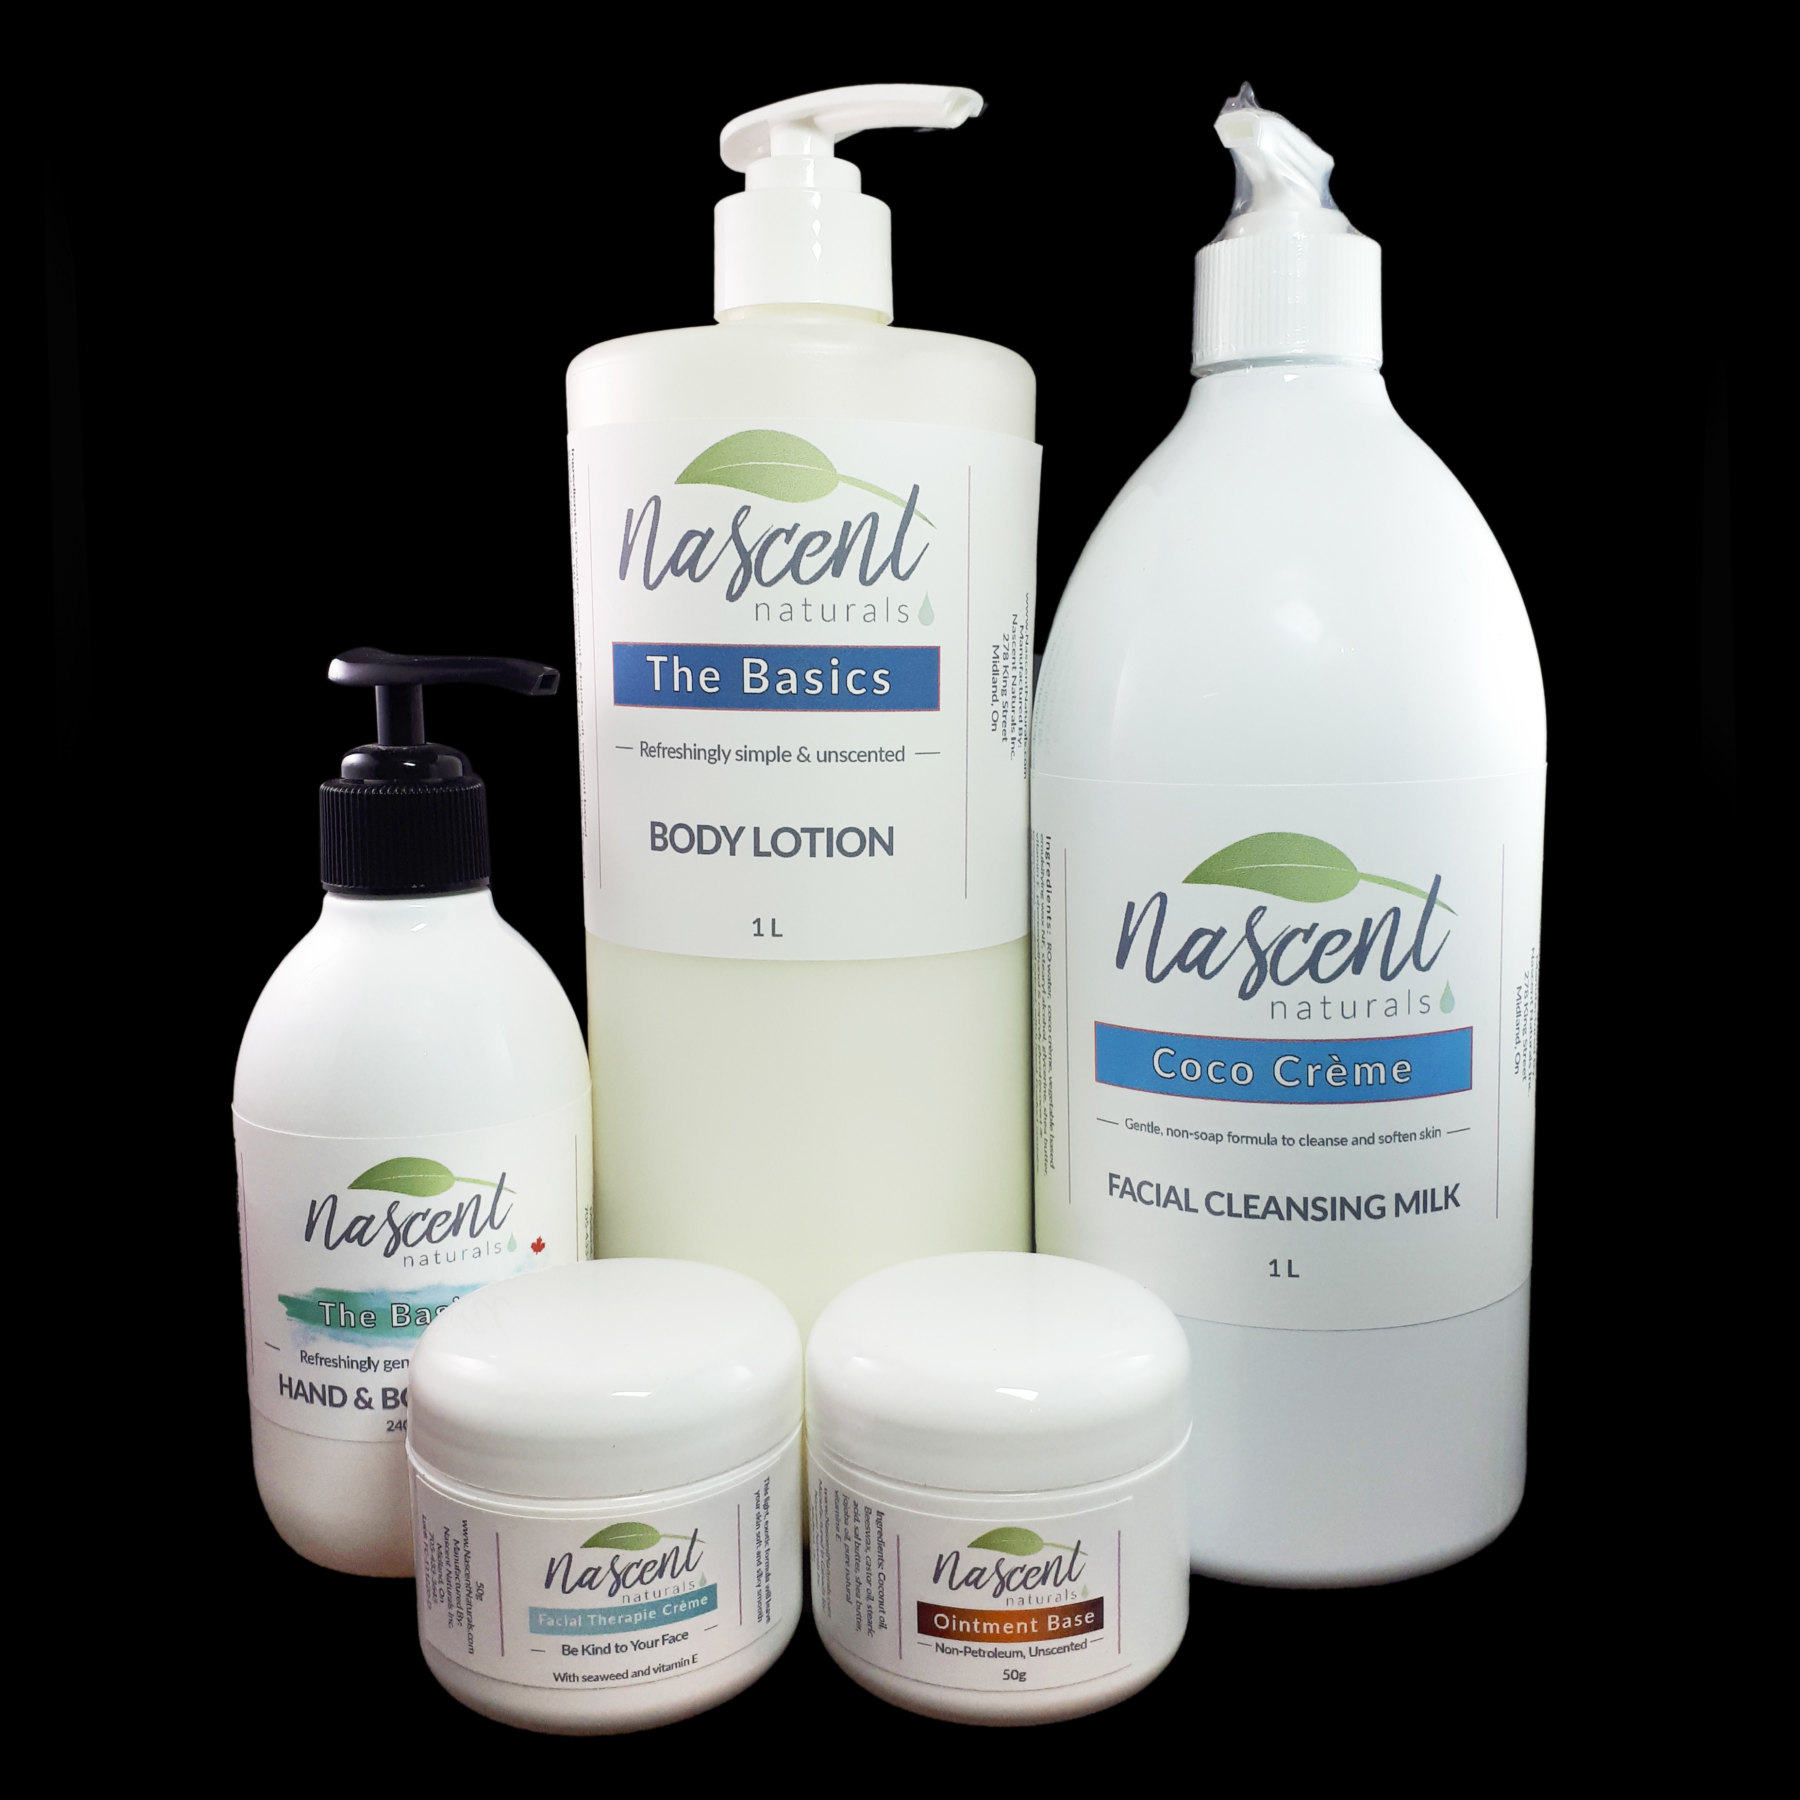 A collection of unscented Nascent Naturals products in front of a black background. The products are: Hand and Body Wash, The Basics Lotion, Coco Creme Cleanser, Facial Therapy Creme, and Ointment Base